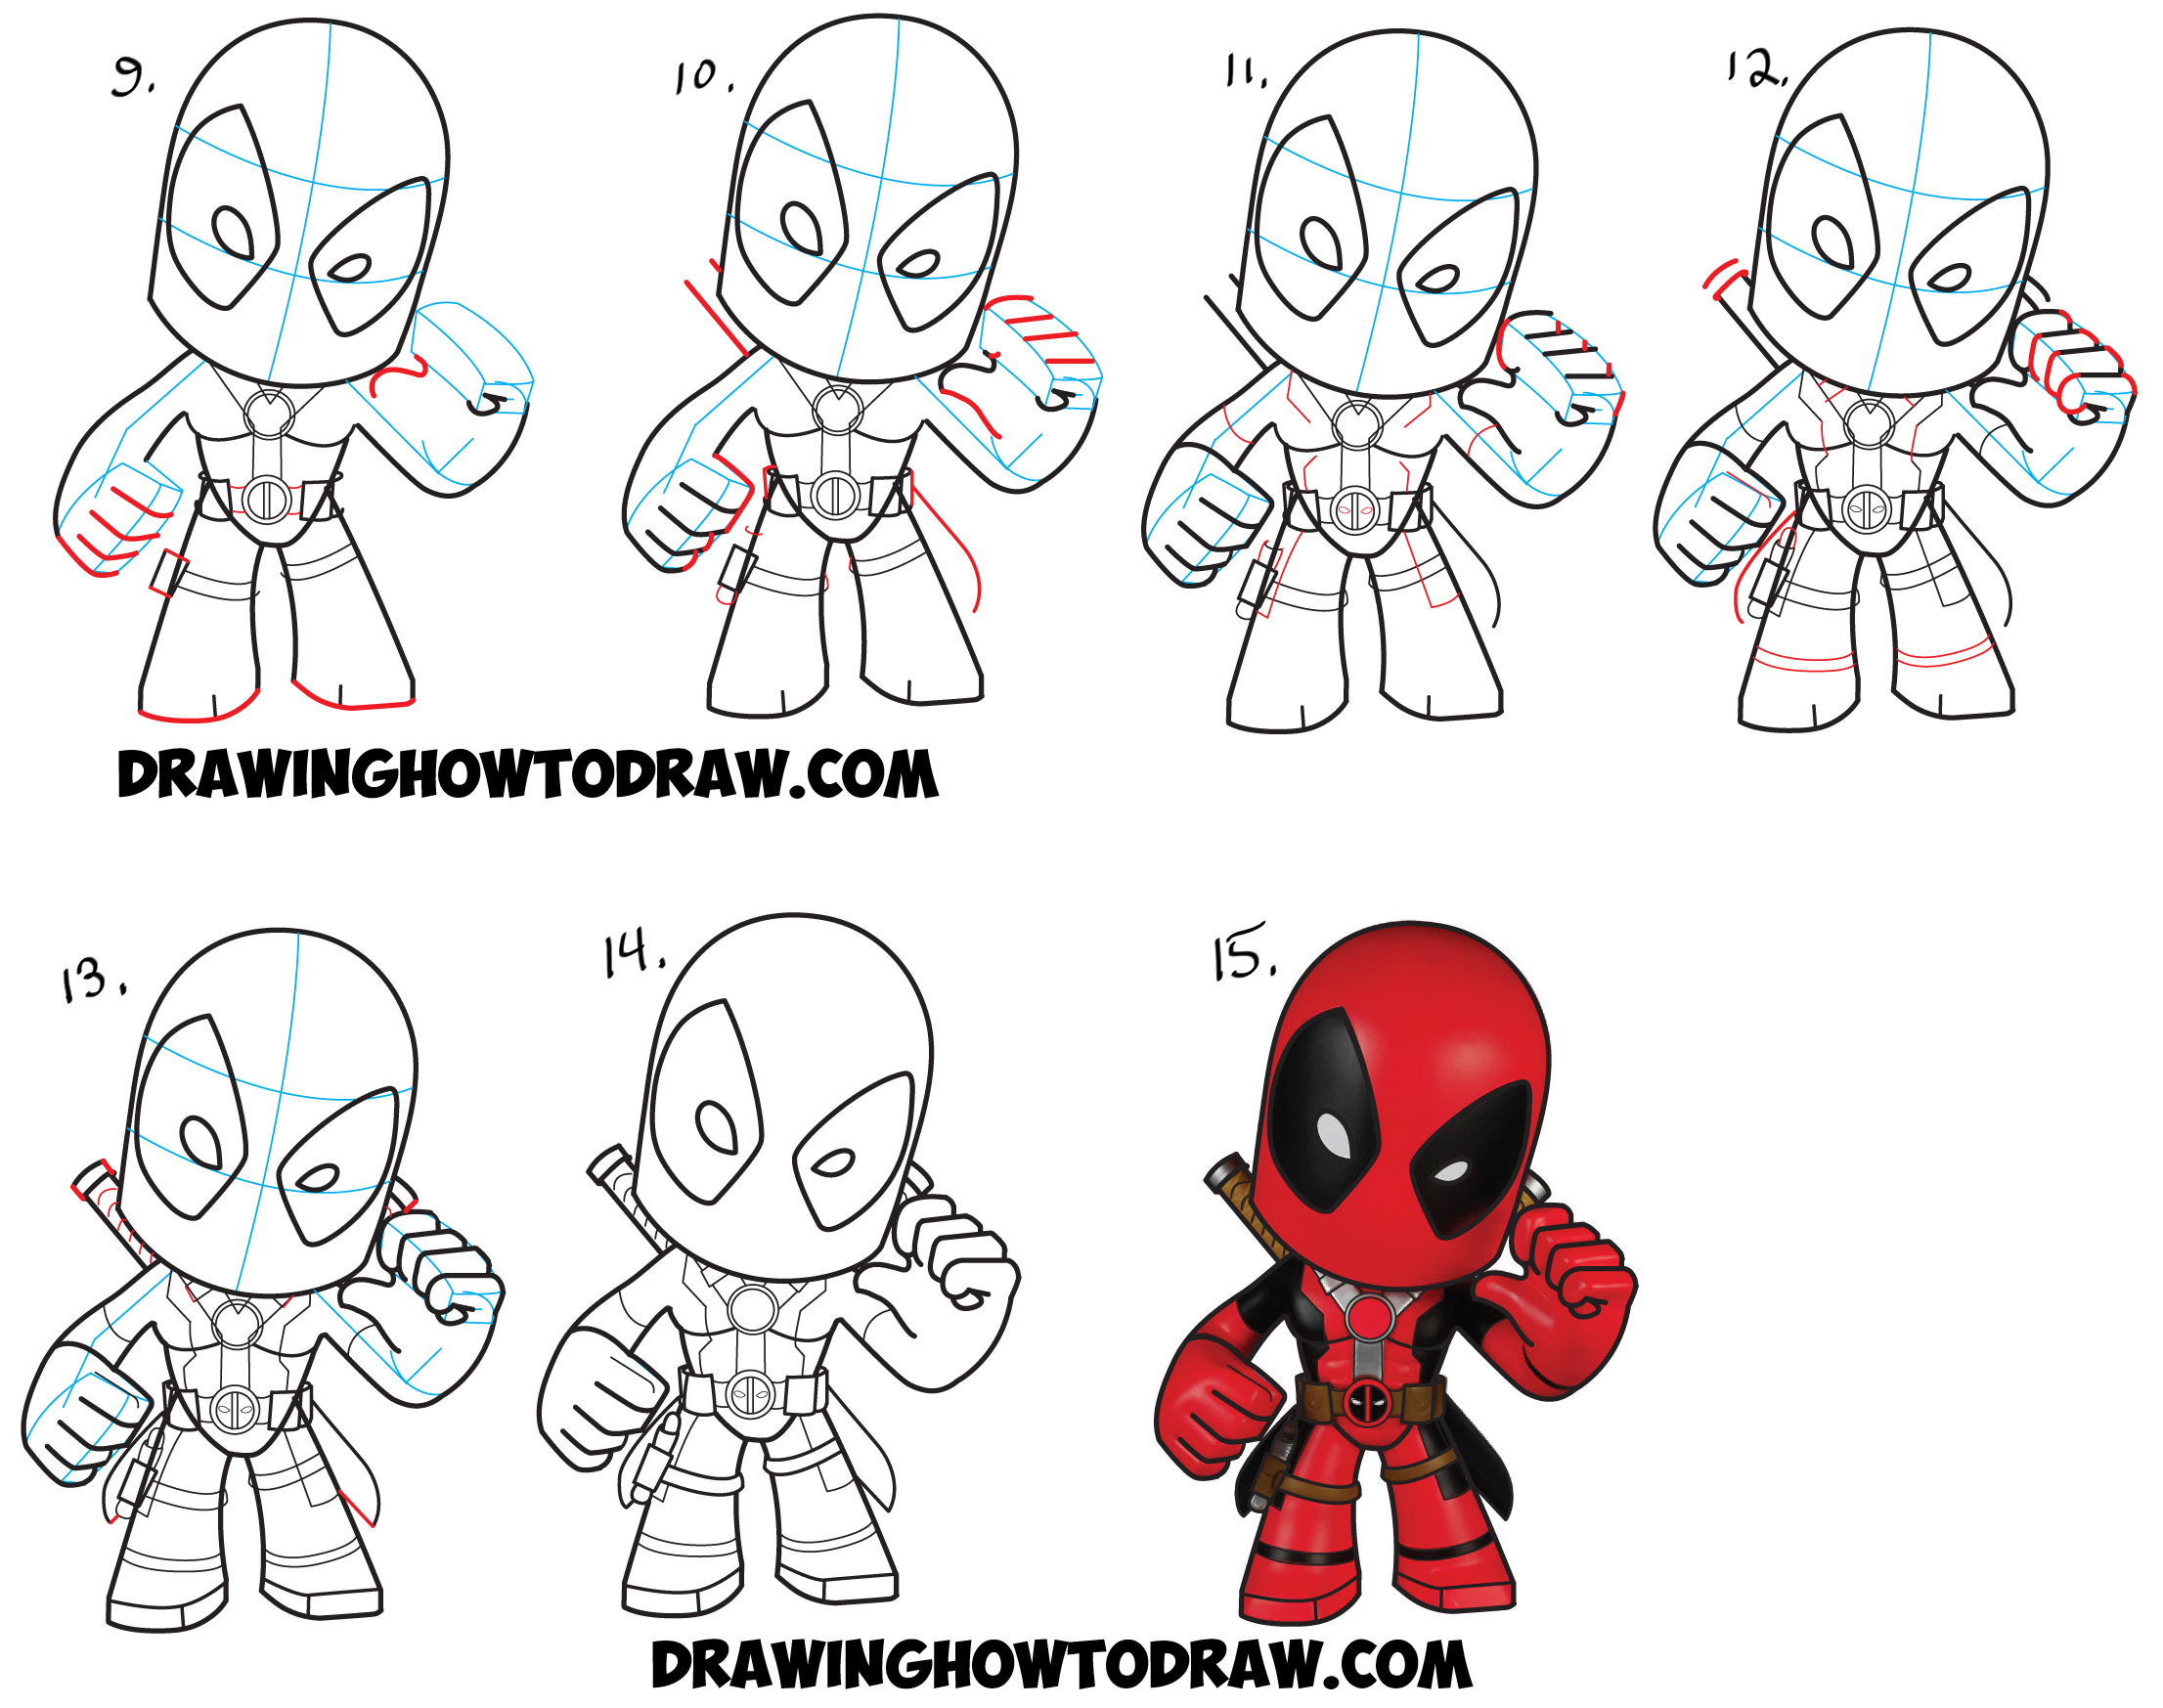 birthday drawings step by step ; howtodraw-chibi-deadpool-stepbystep-tutorial-2